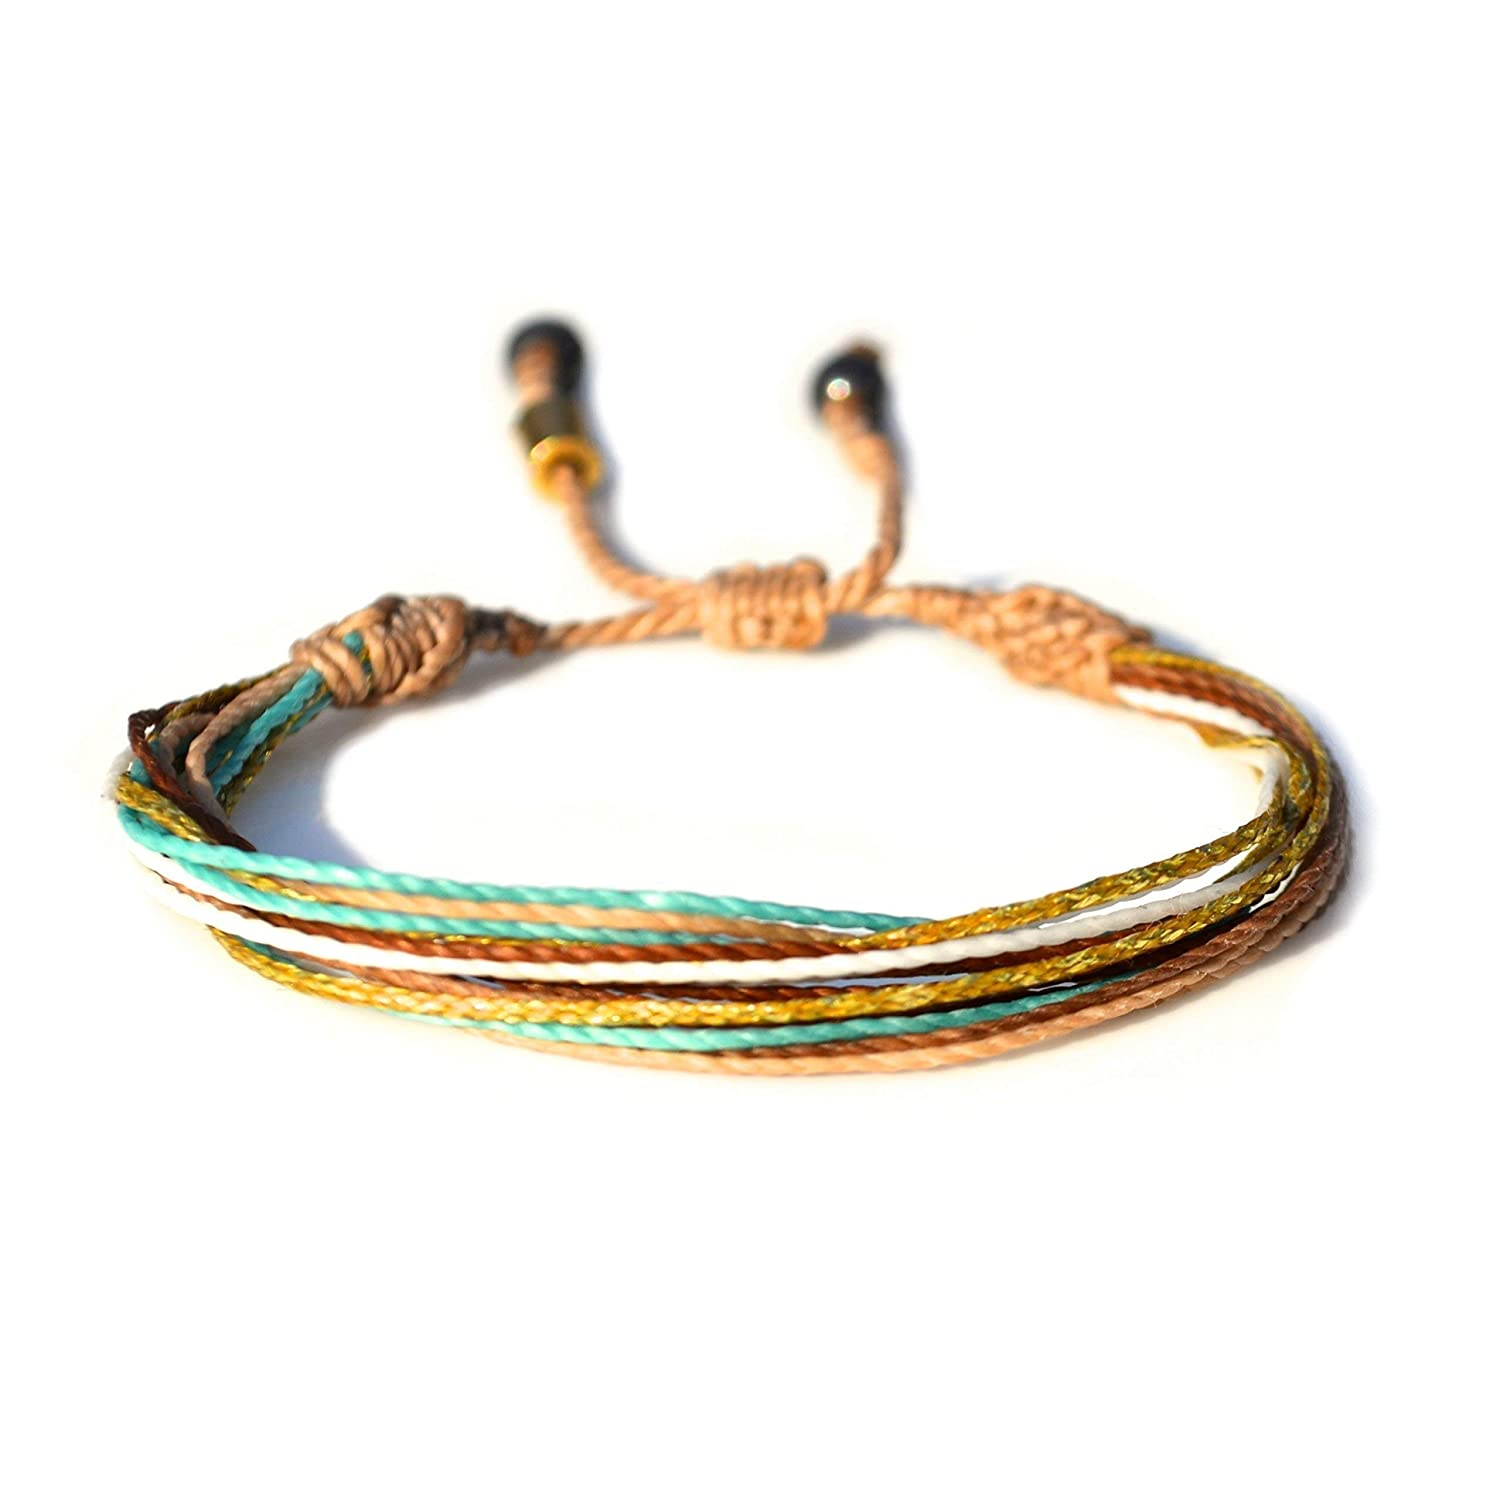 Surfer String Bracelet with Hematite Stones in Tan, Metallic Gold, Aqua, White, and Rust: Handmade Unisex Rope Friendship Beach Adjustable Surf Bracelet for 6-7